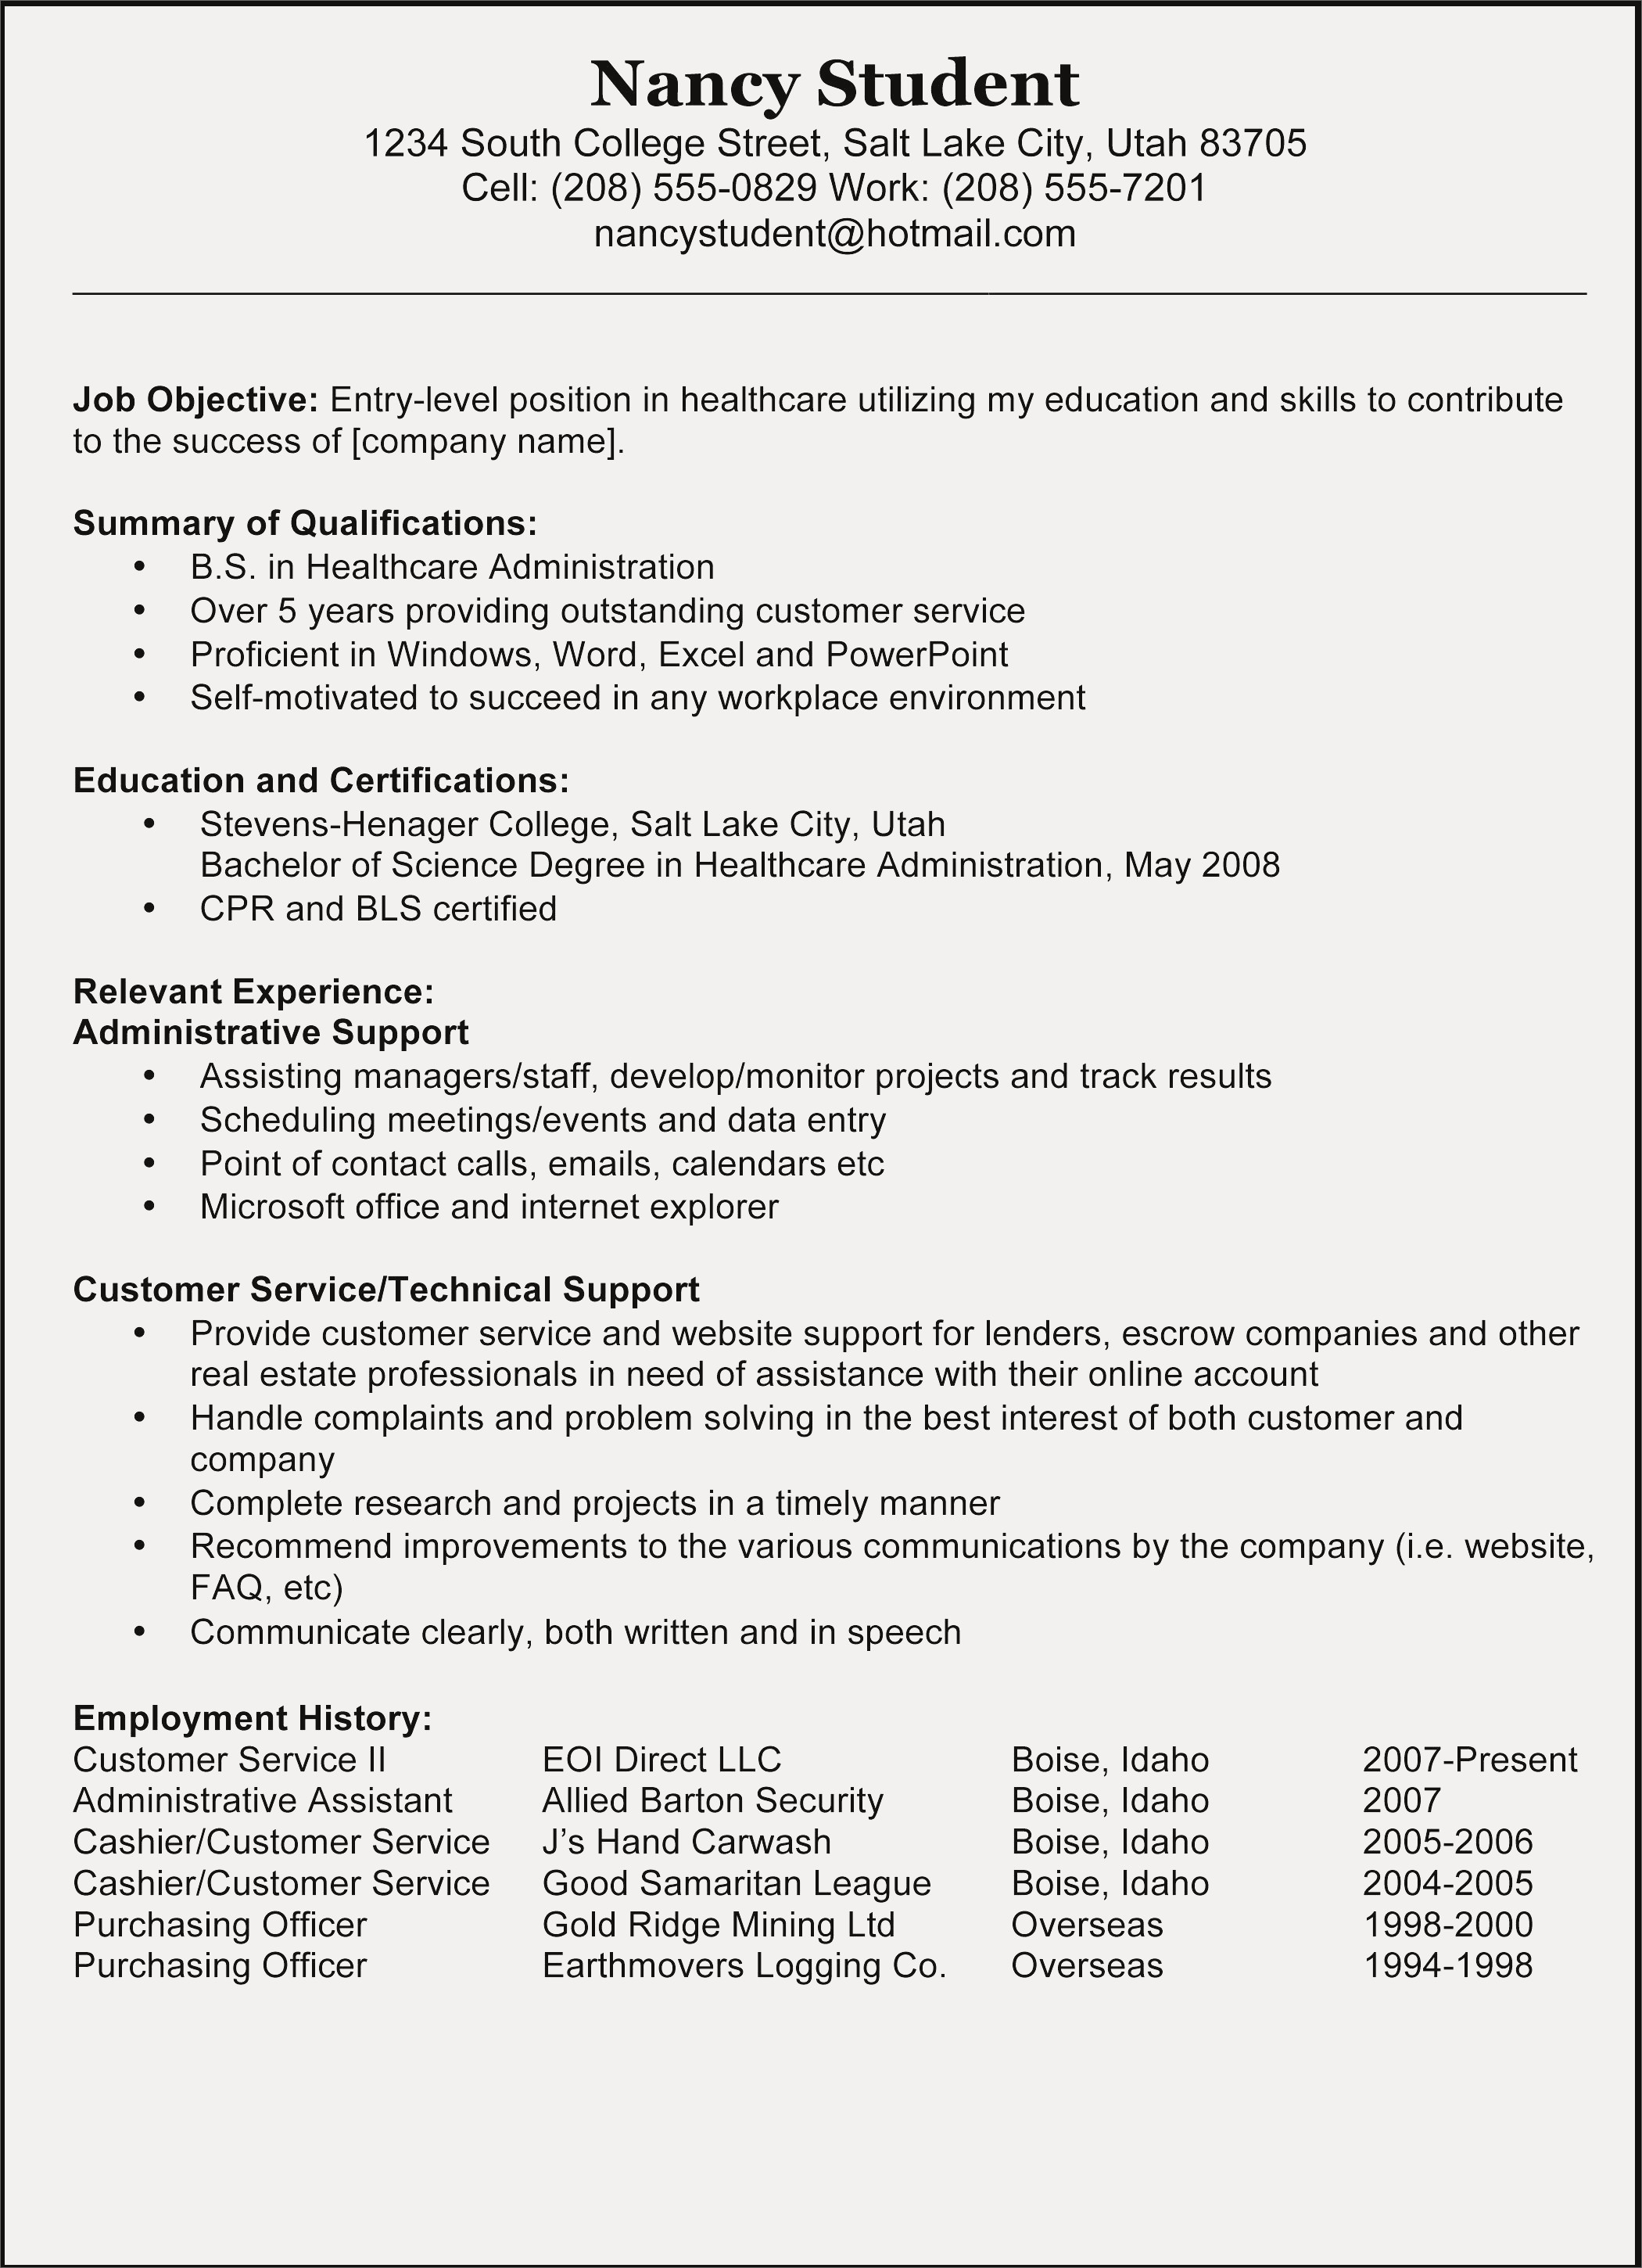 superintendent resume template Collection-Resume Objective Samples New Resume Objective Samples Lovely Resume Examples 0d Good Looking 3-j